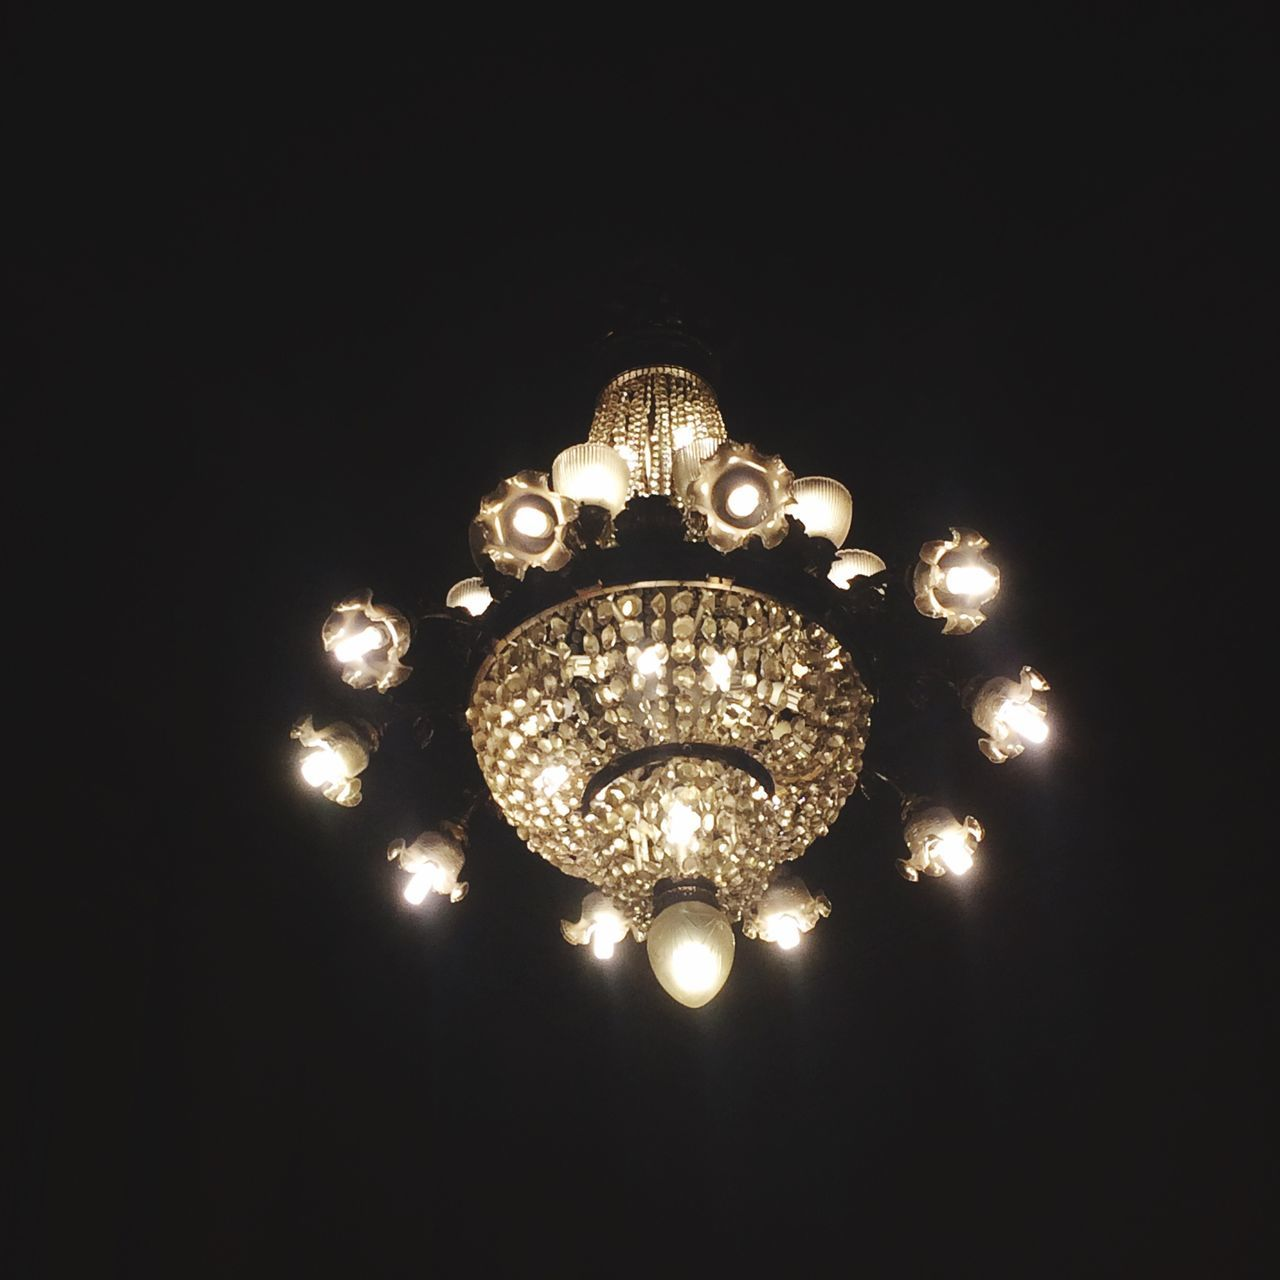 illuminated, lighting equipment, electricity, night, low angle view, no people, glowing, light bulb, black background, hanging, indoors, close-up